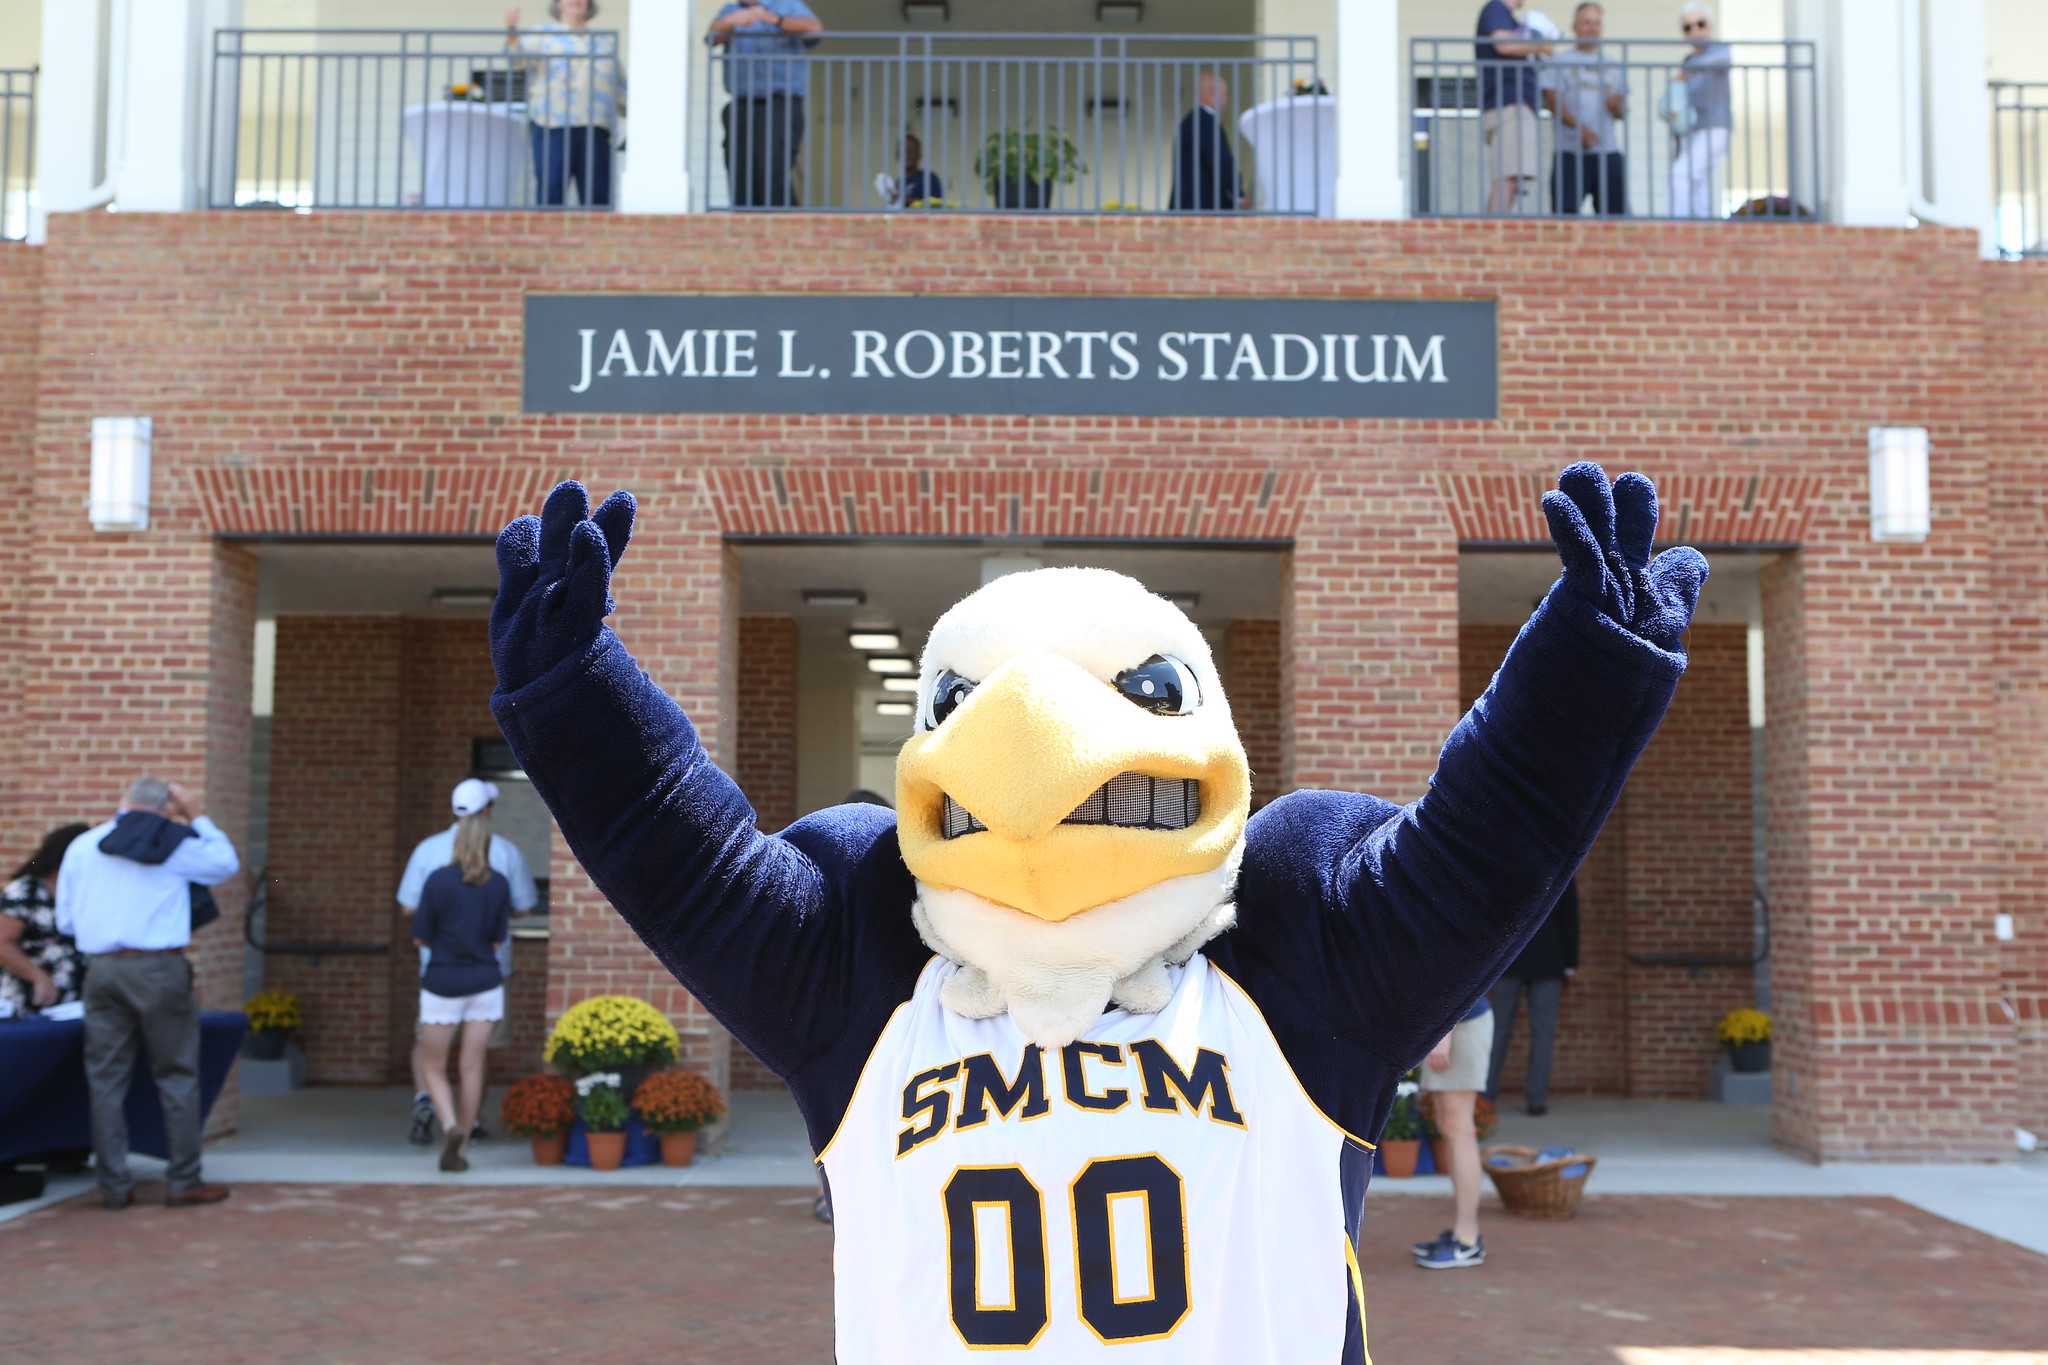 Our mascot, Solomon the Seahawk stands with it's arms raised in the air in front of Jamie L. Roberts Stadium sign.